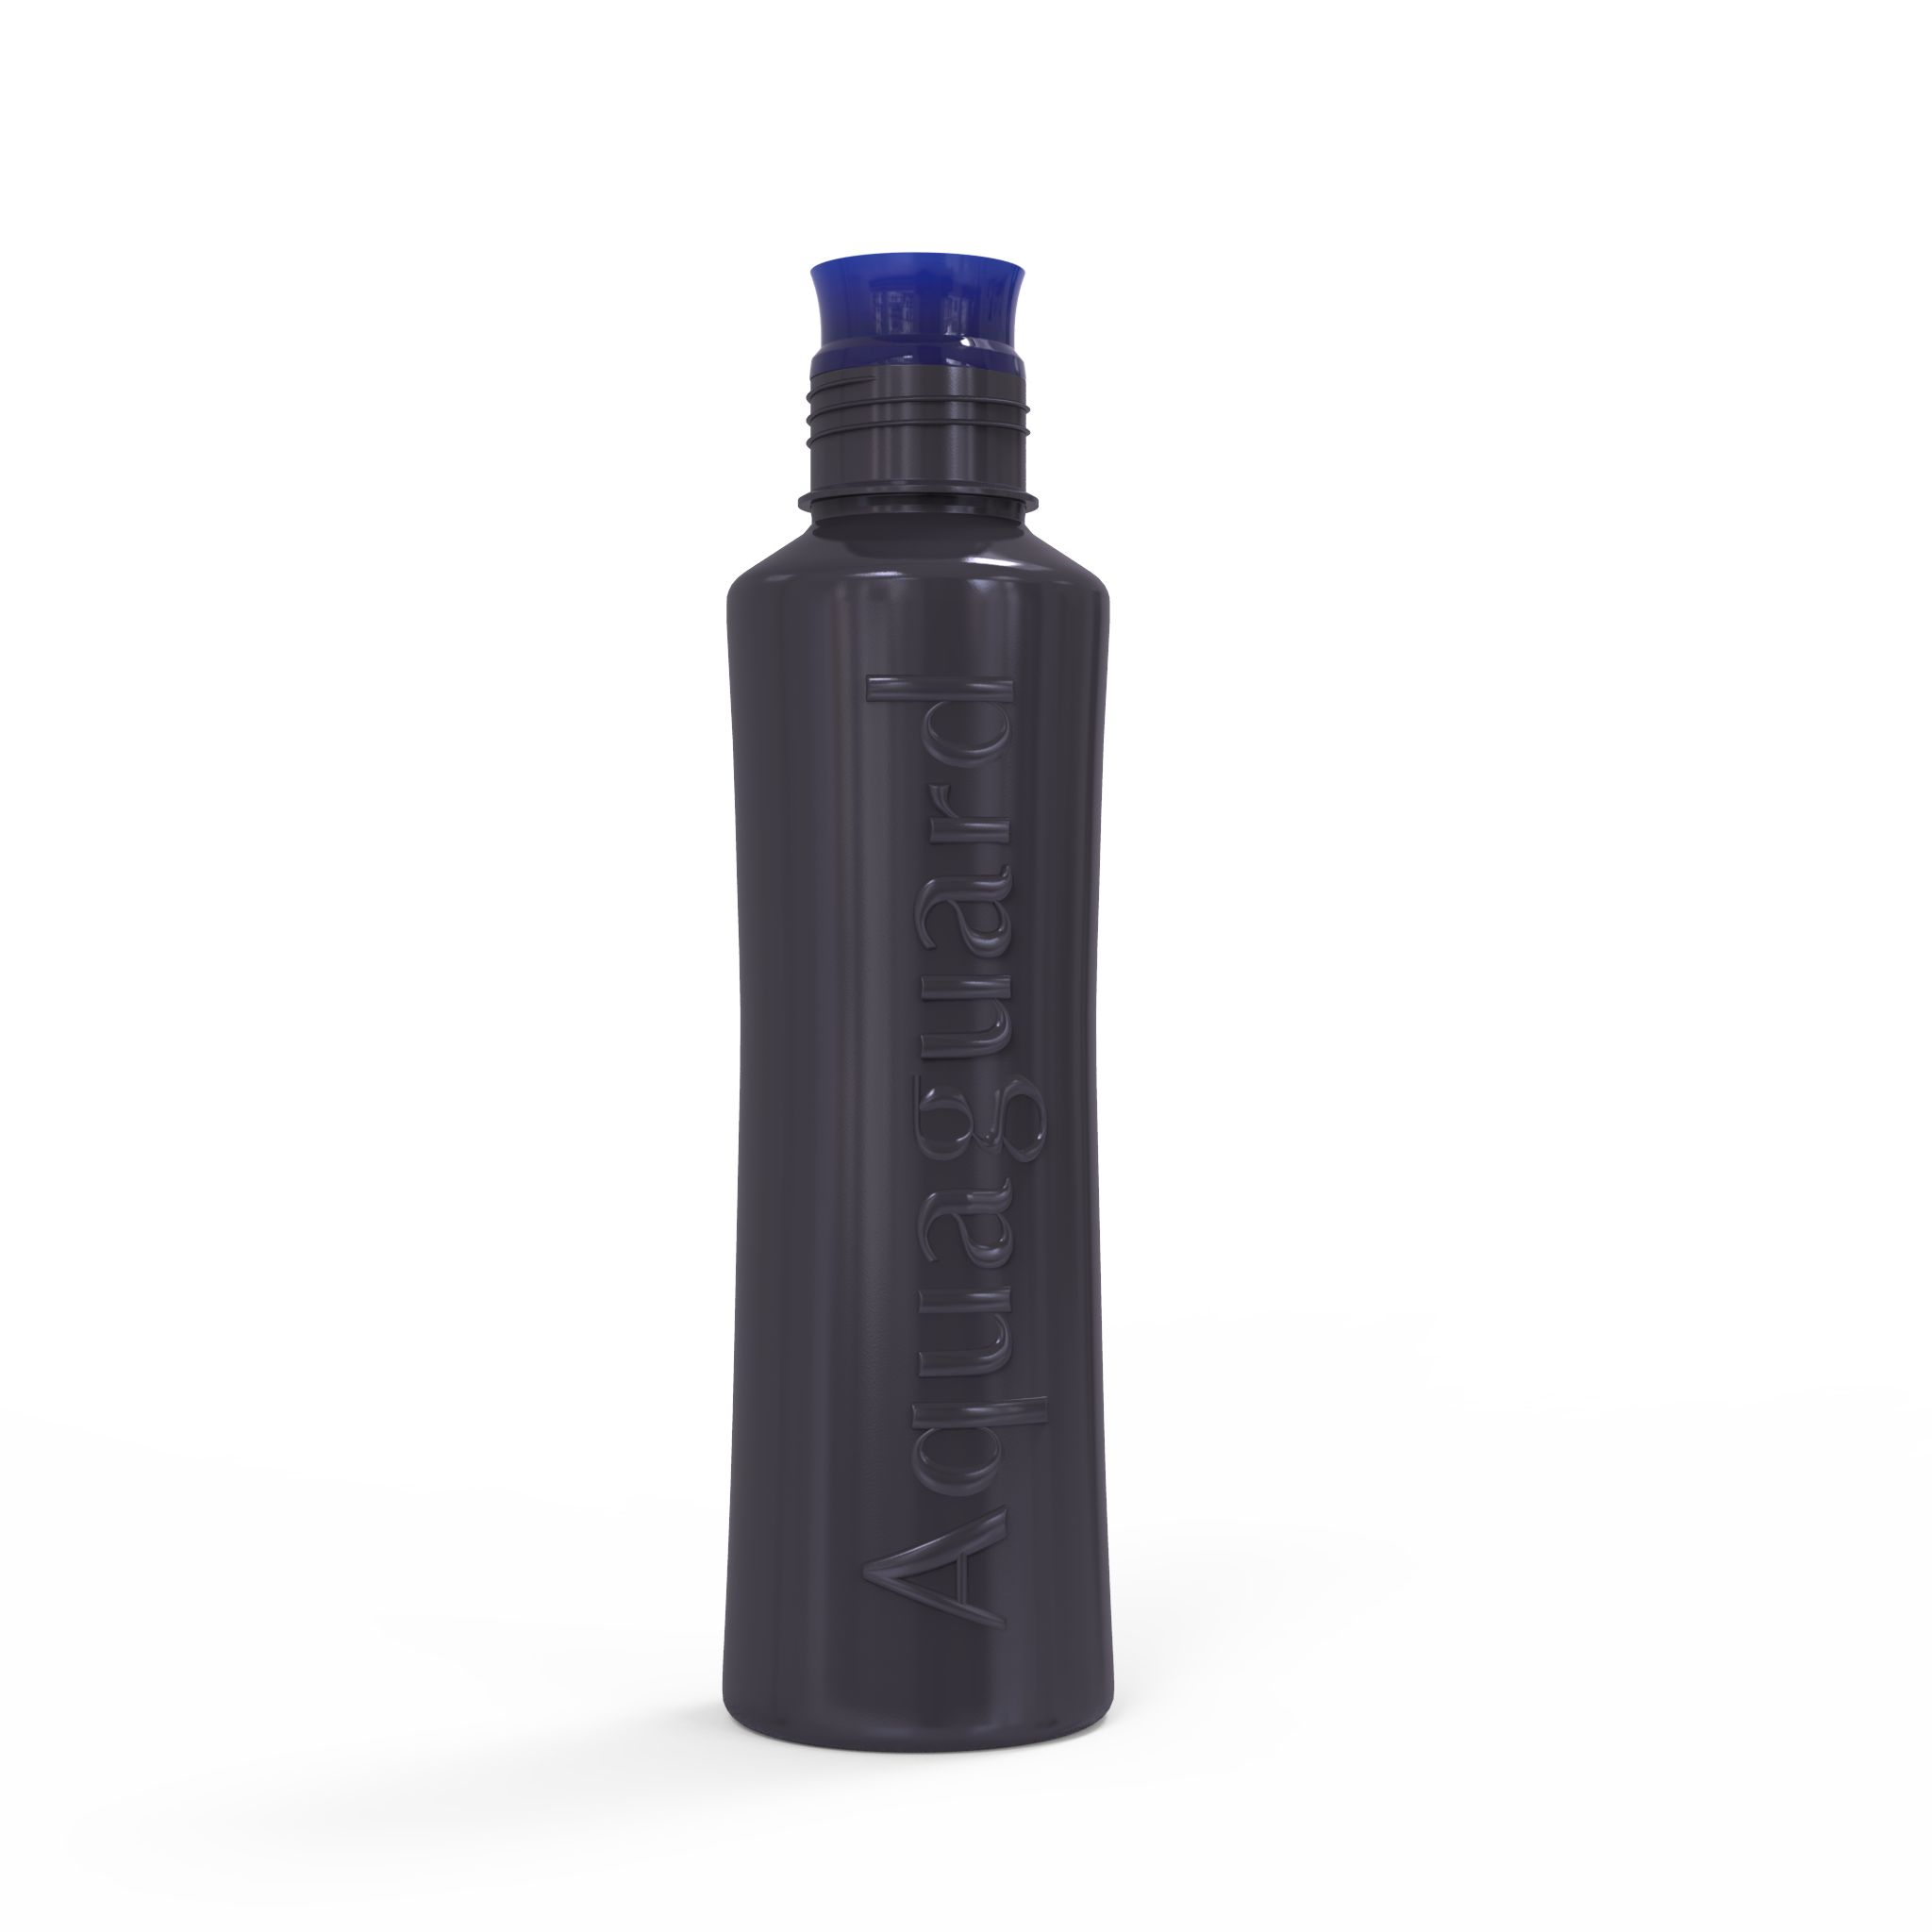 Transparent worms water bottle. H go drinking single